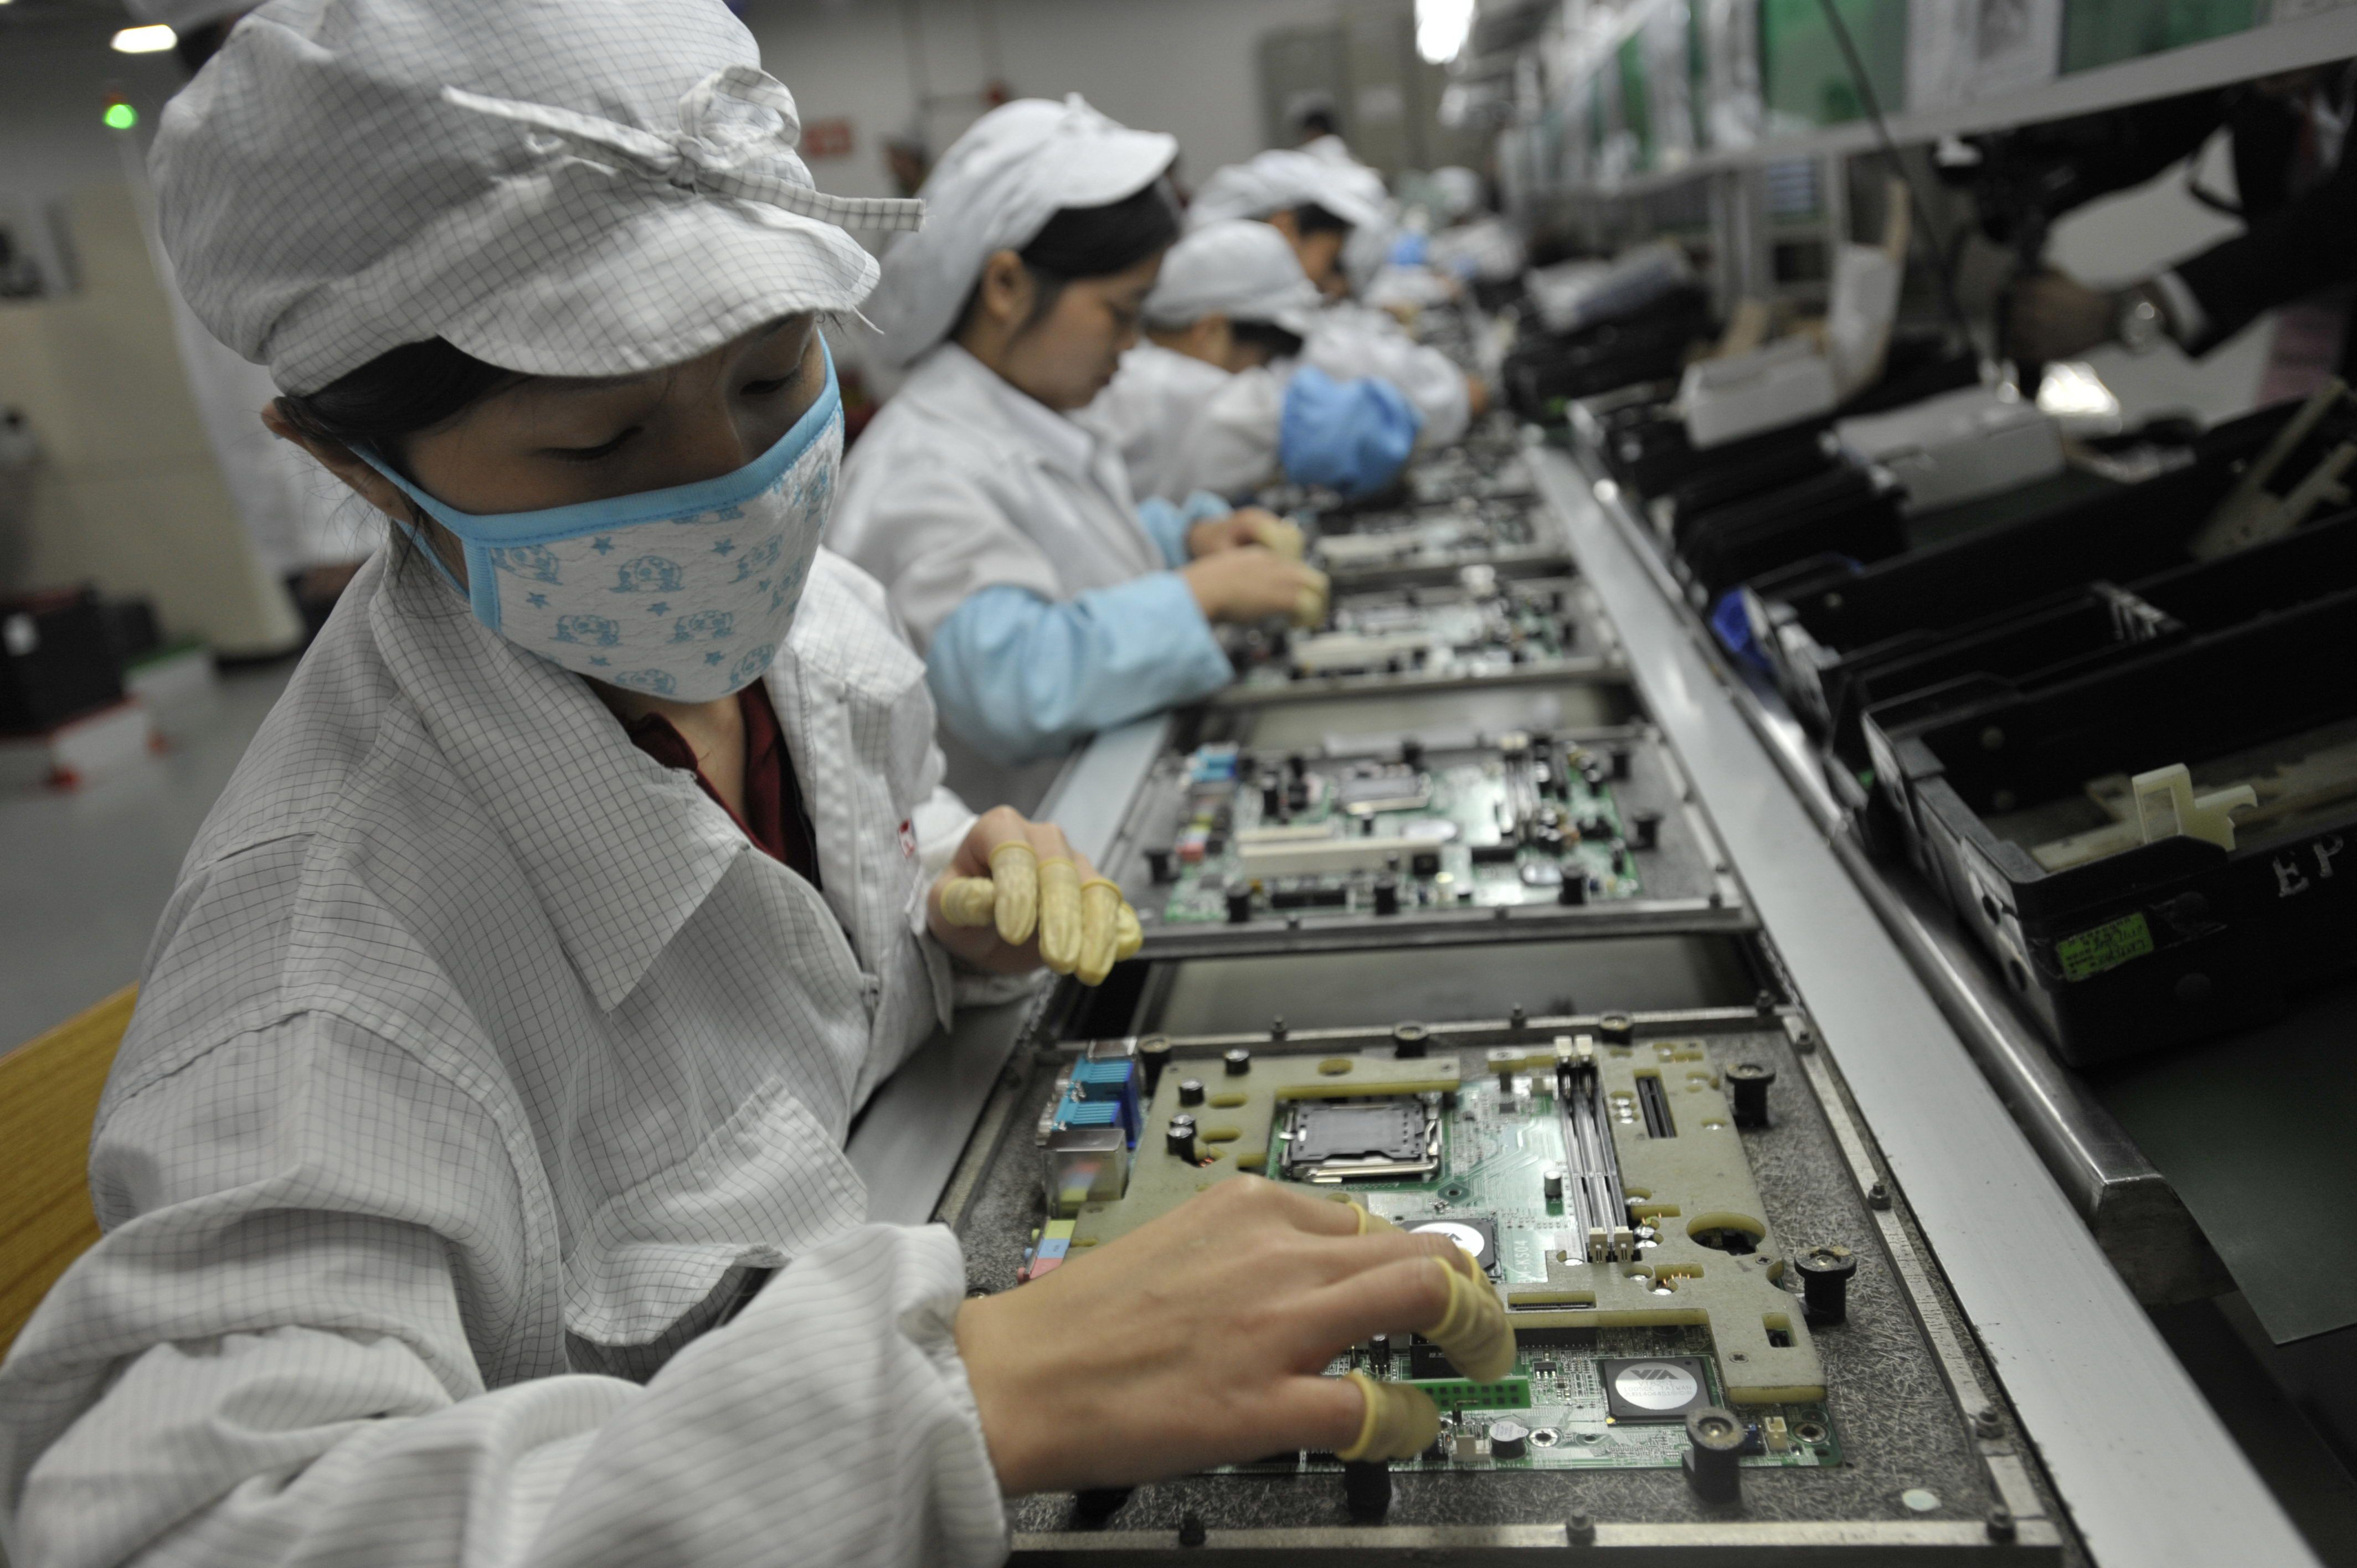 This photo taken on May 27, 2010 shows Chinese workers in the Foxconn factory in Shenzhen, in southern China's Guangdong province.  A labour rights group said on June 28, it had found 'deplorable' conditions at Apple suppliers in China, following a probe of several firms that supply the US technology giant.     CHINA OUT      AFP PHOTO        (Photo credit should read STR/AFP/GettyImages)